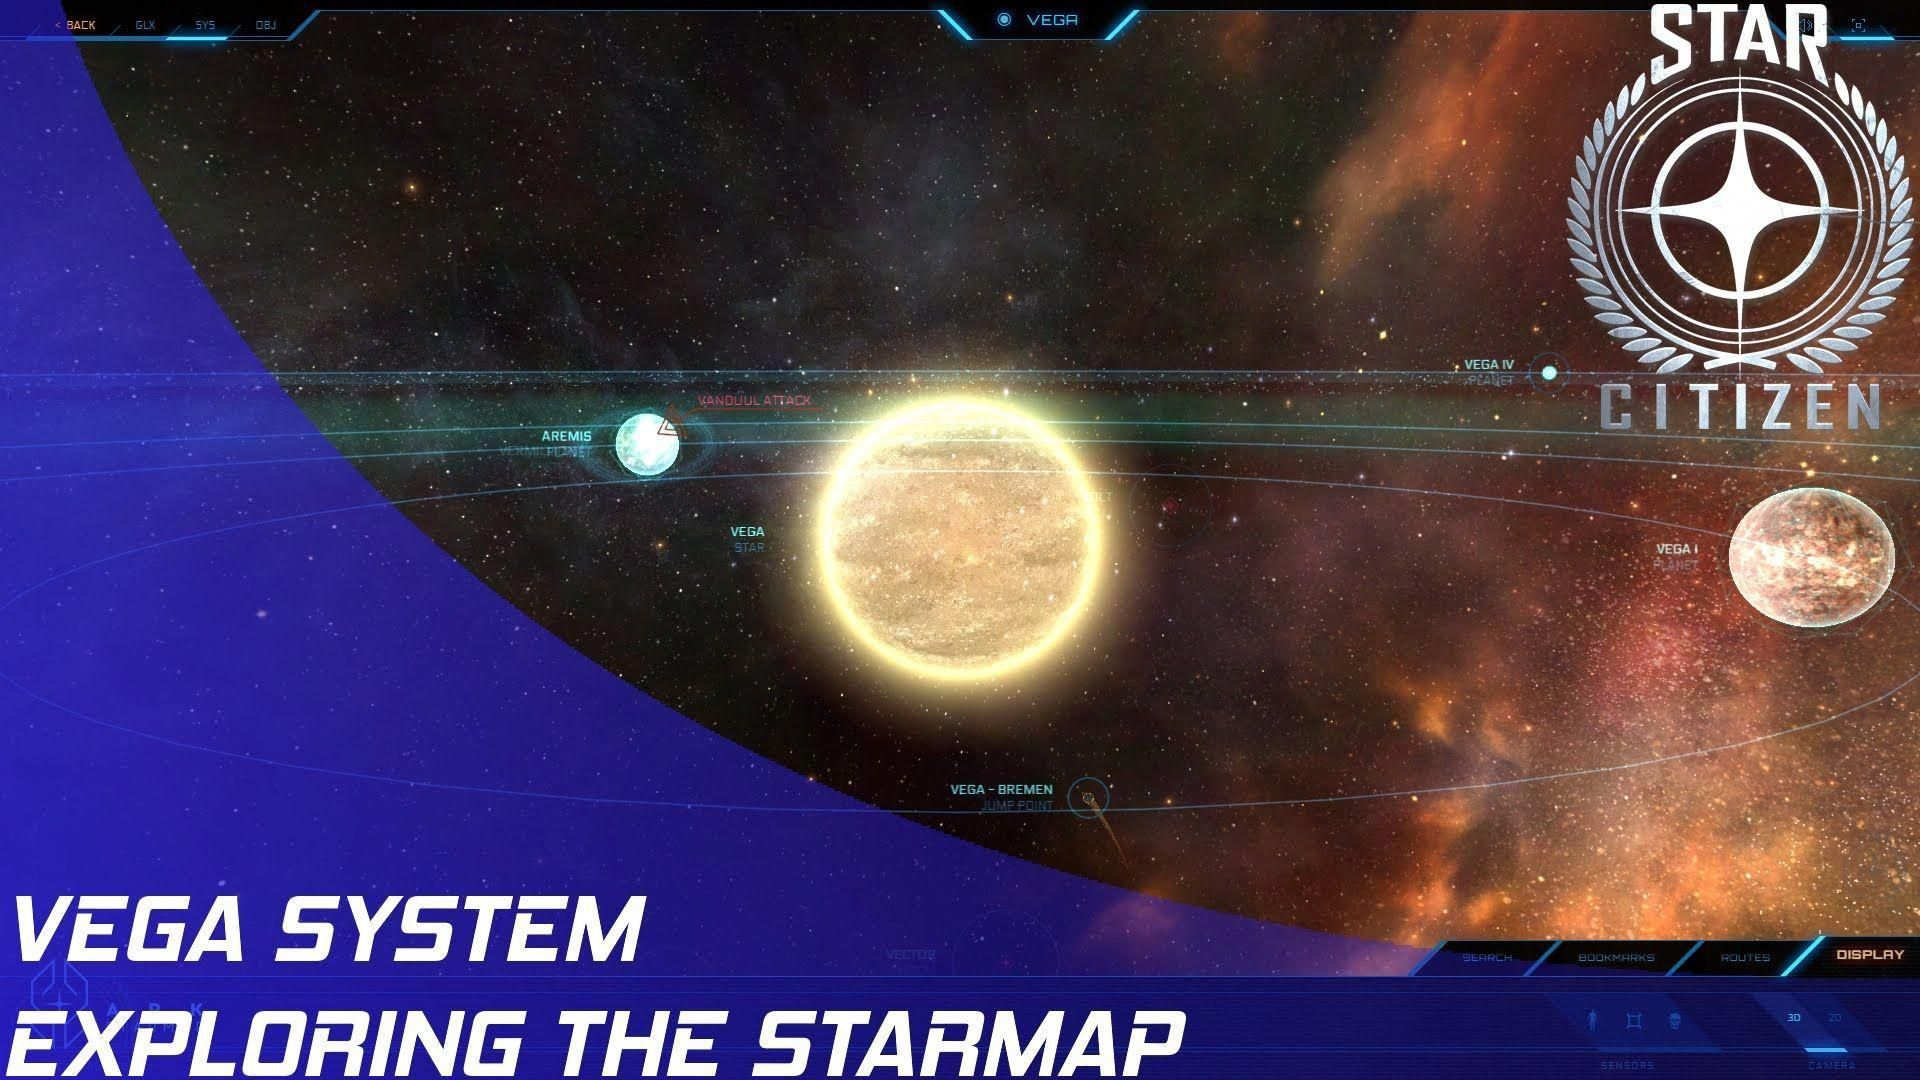 Star Citizen Starmap Vega System Starcitizenships Star Citizen